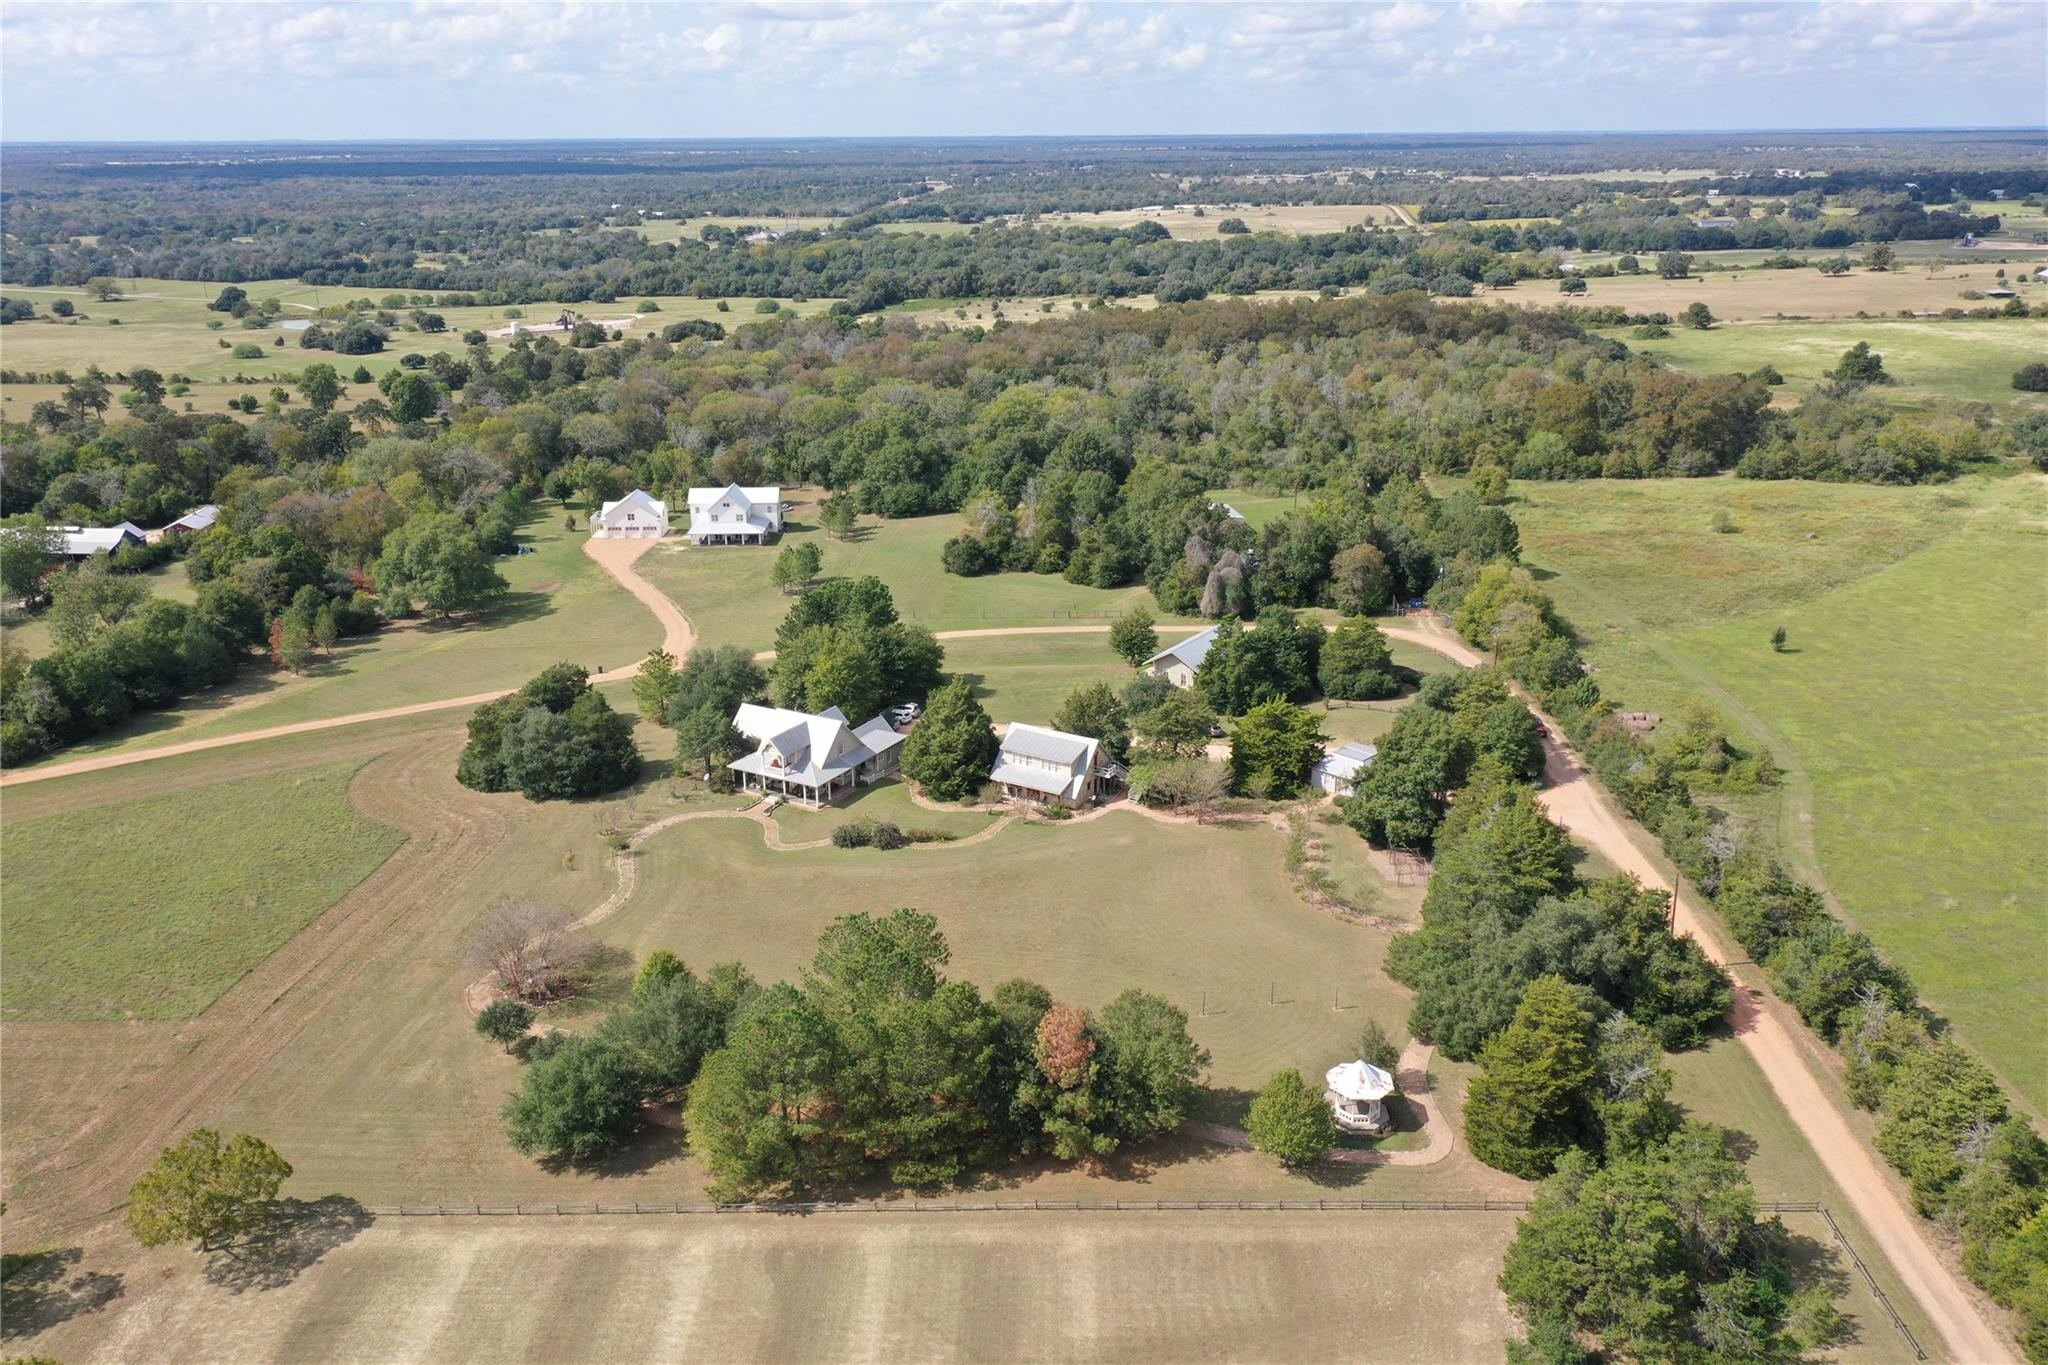 580 N Washington Property Photo - Round Top, TX real estate listing